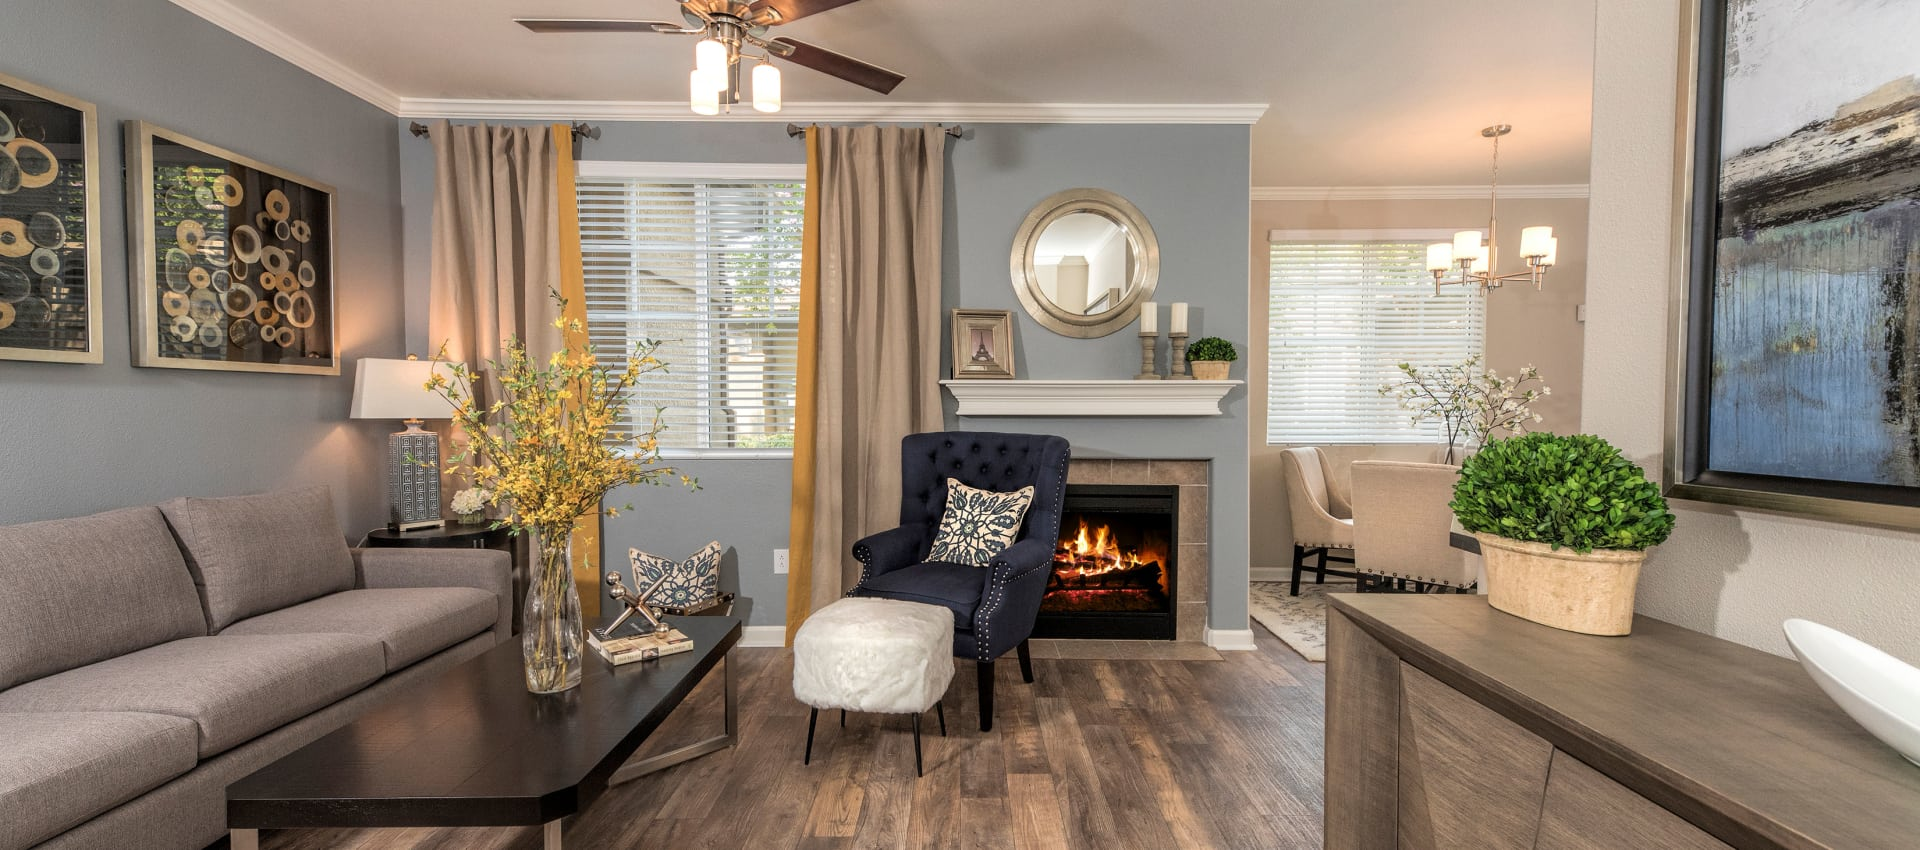 Cozy living room at The Artisan Apartment Homes in Sacramento, California